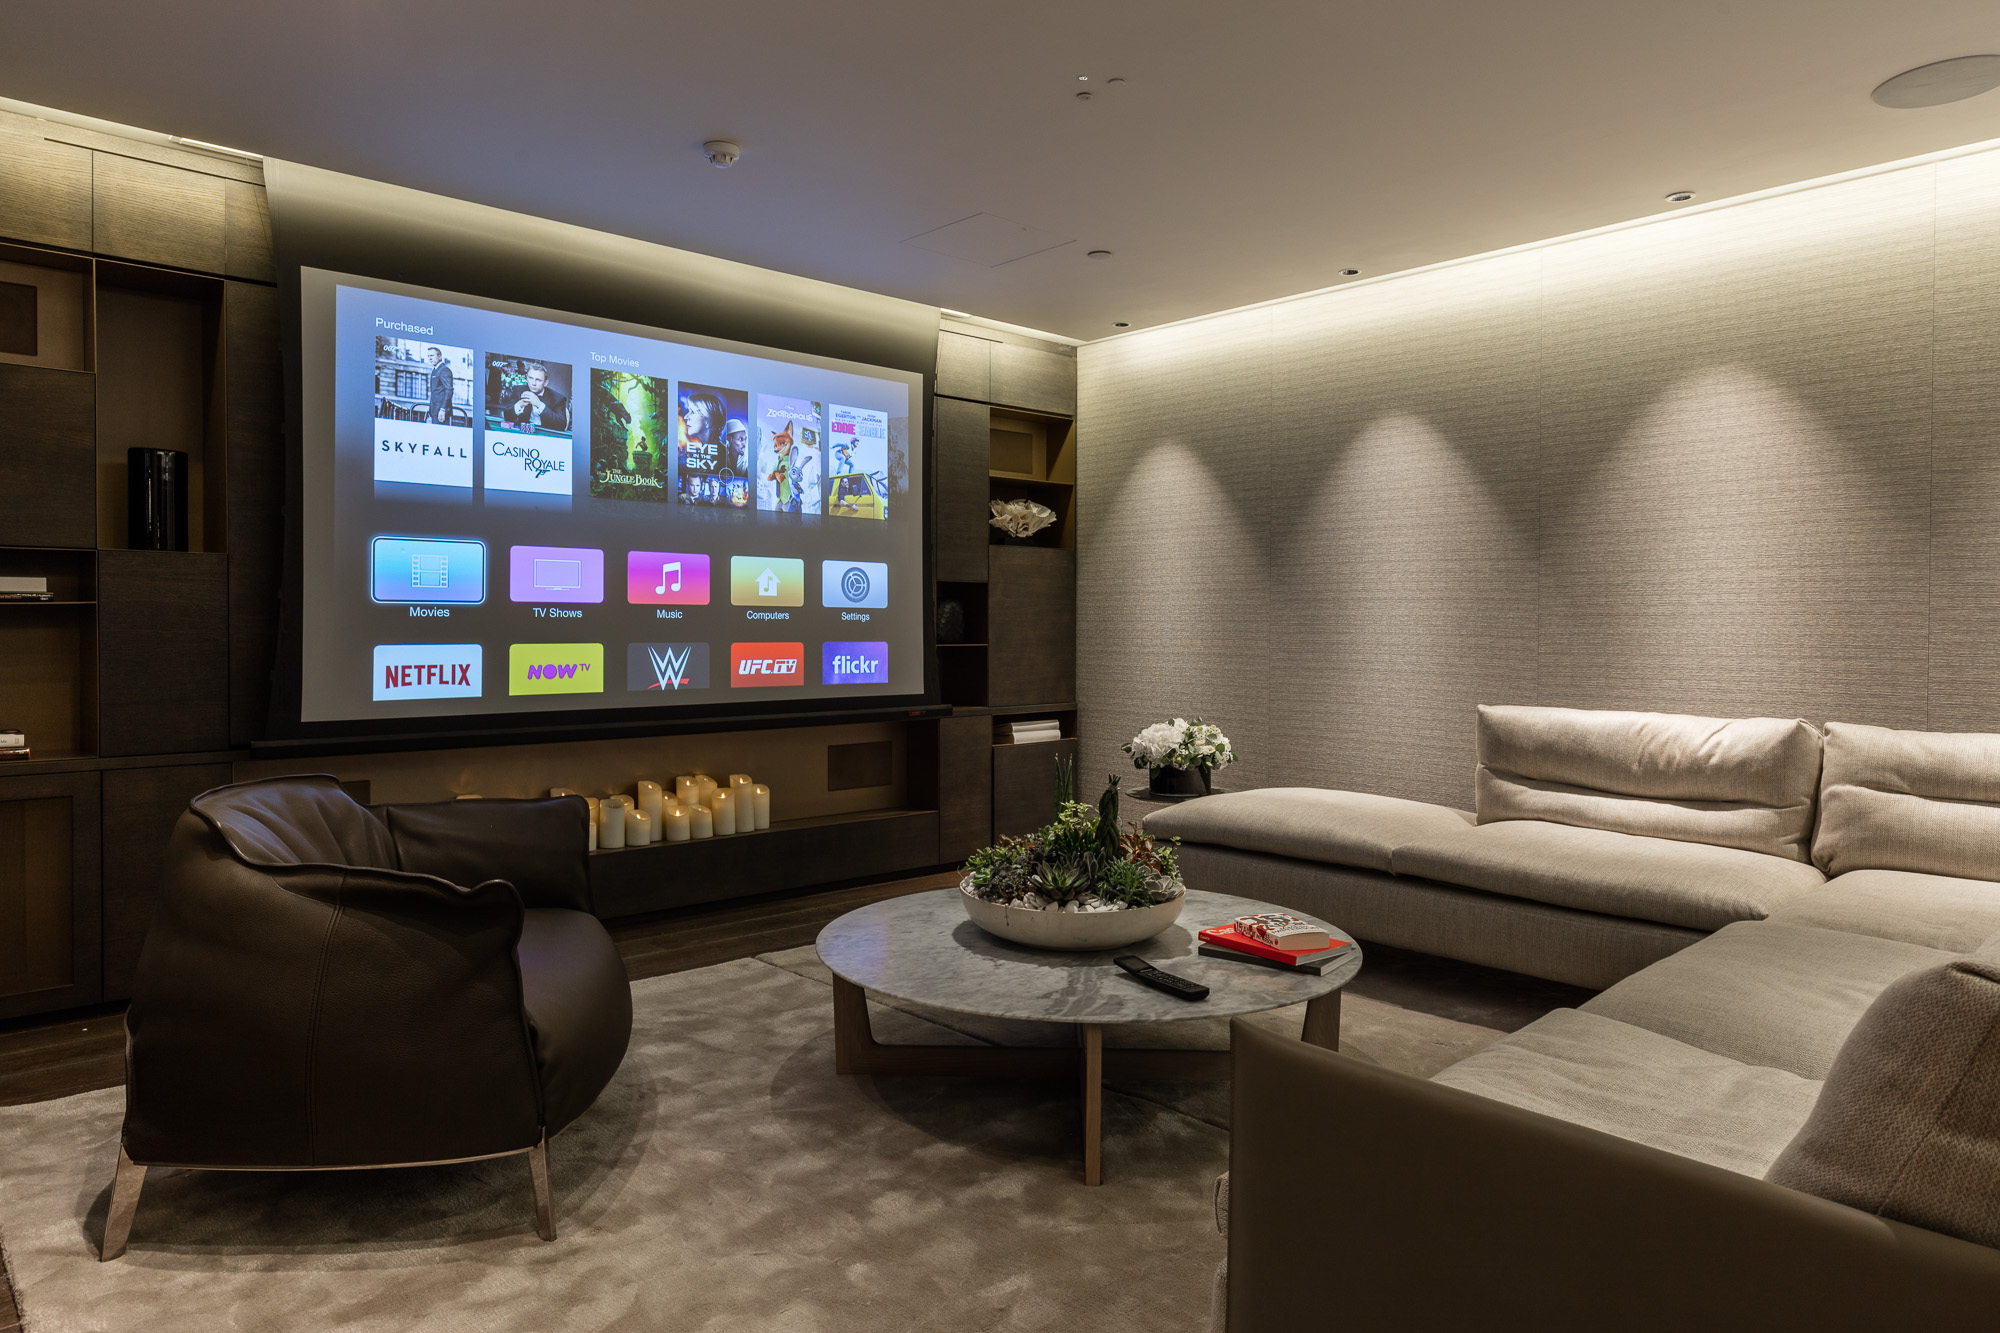 step-into-the-showroom-living-space-ready-for-entertaining-guests-with-hd-streamed-content-1